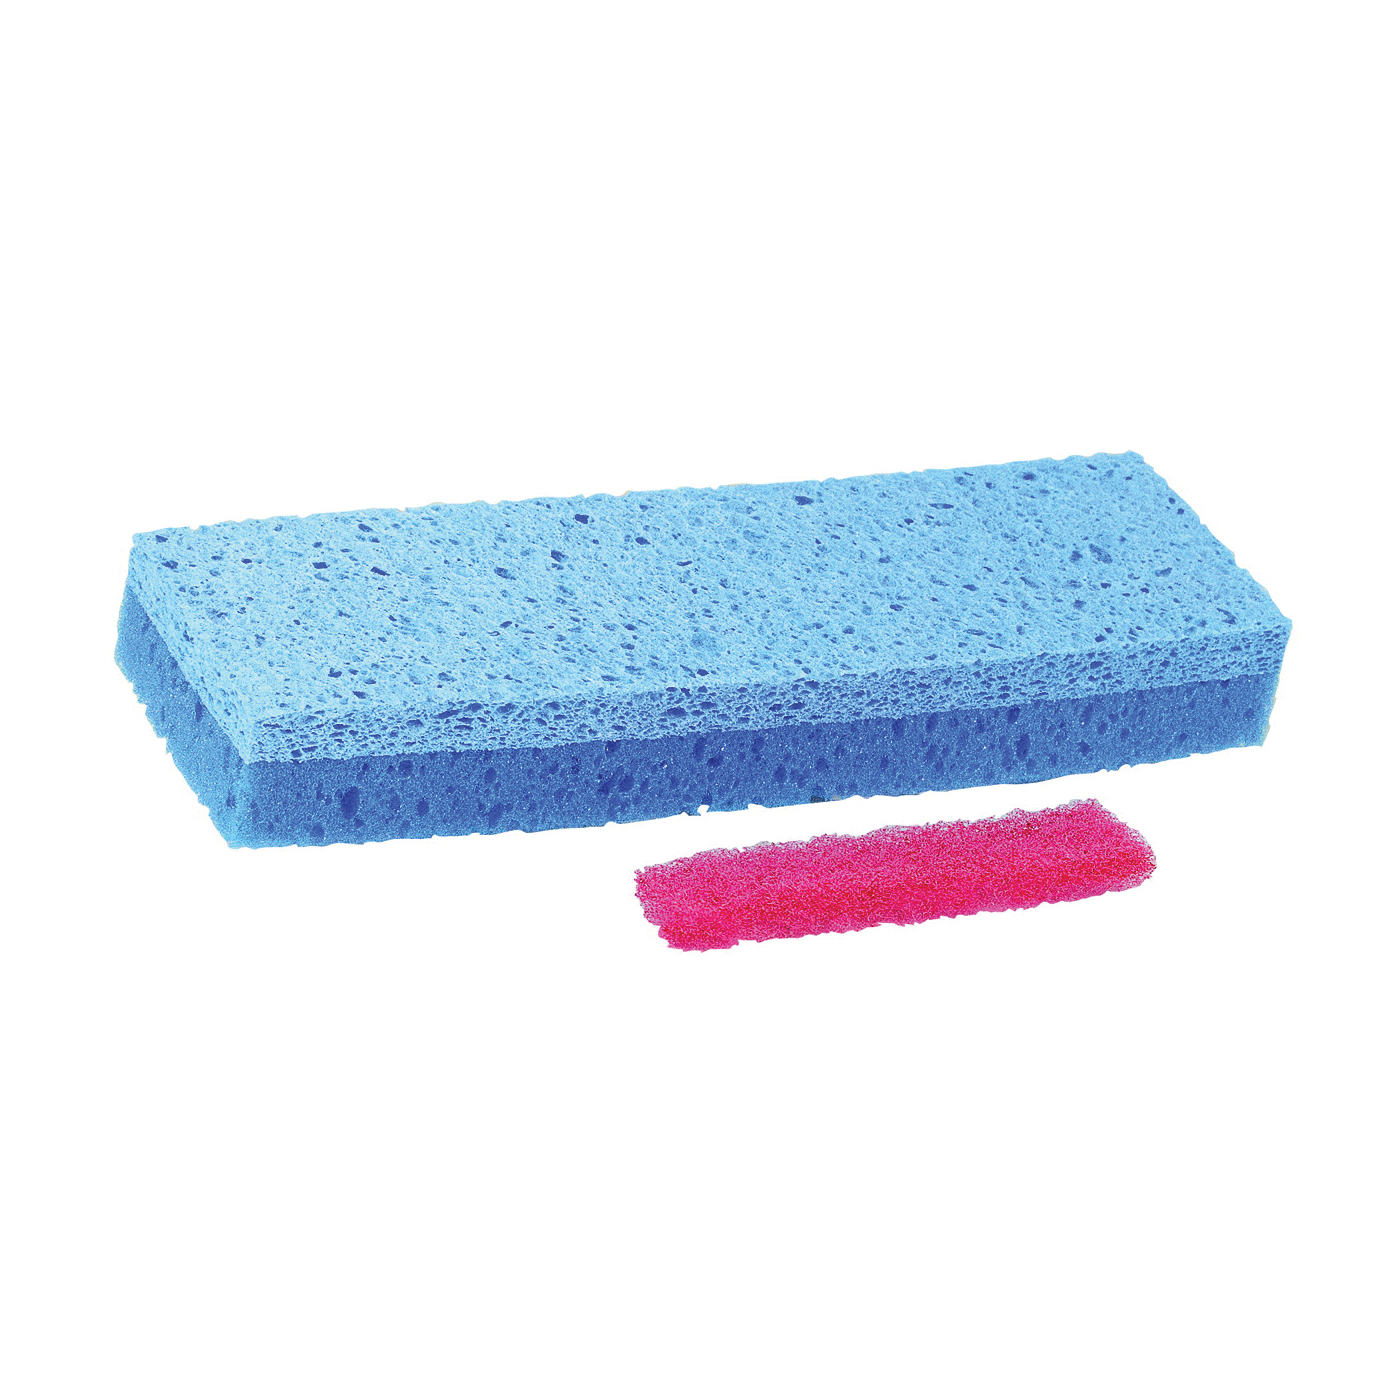 Picture of Quickie 0442 Sponge Mop Head, Cellulose